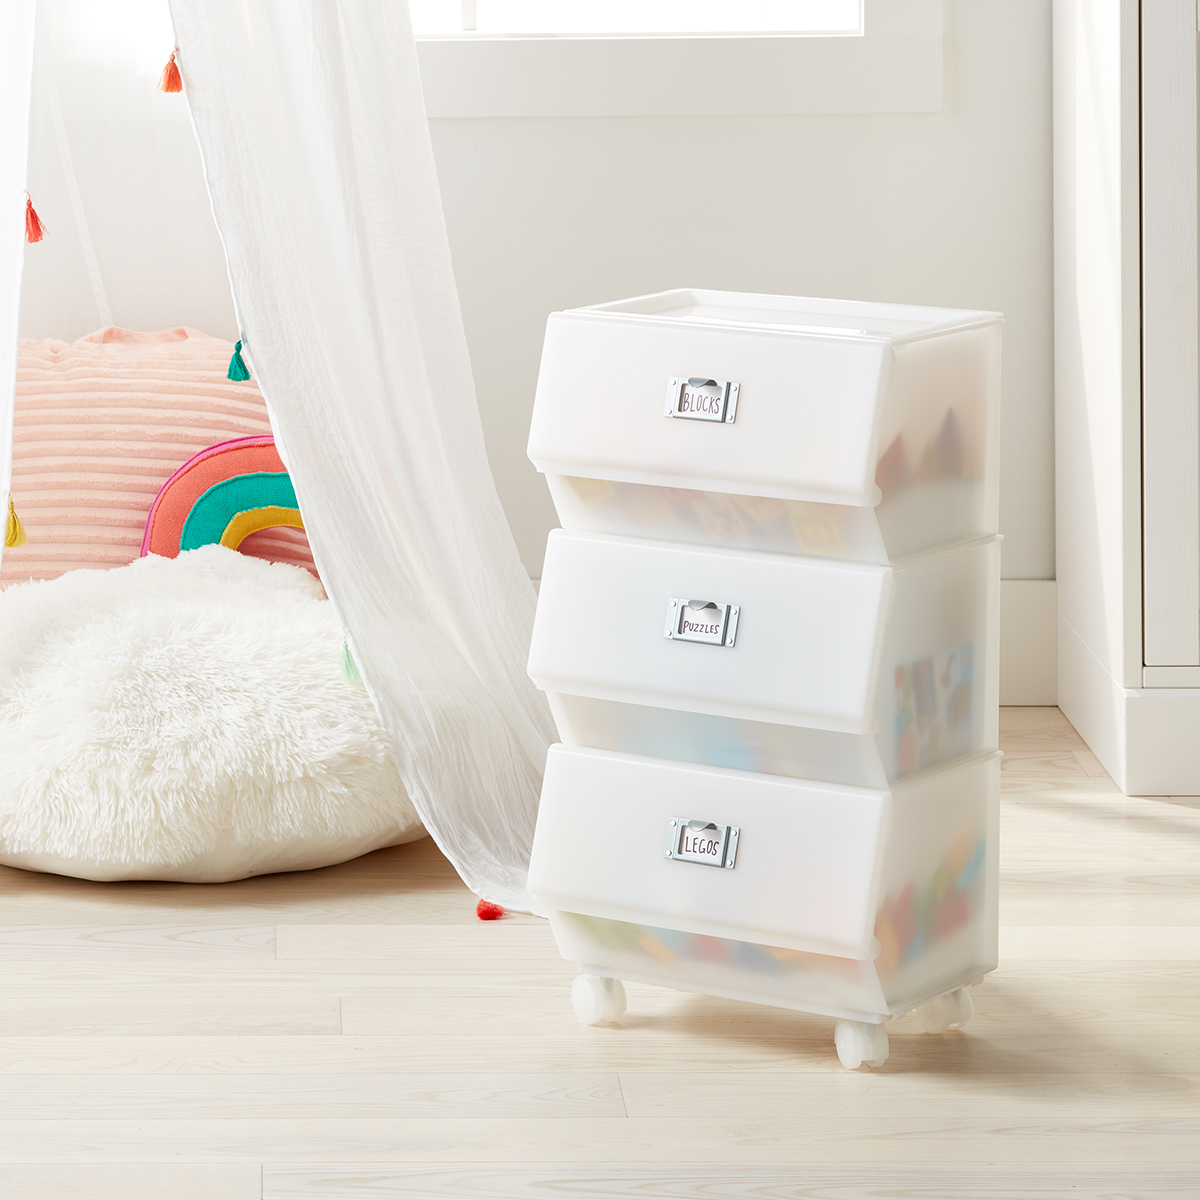 Like-It 3-Tier Stacking Peek-A-Boo Bin